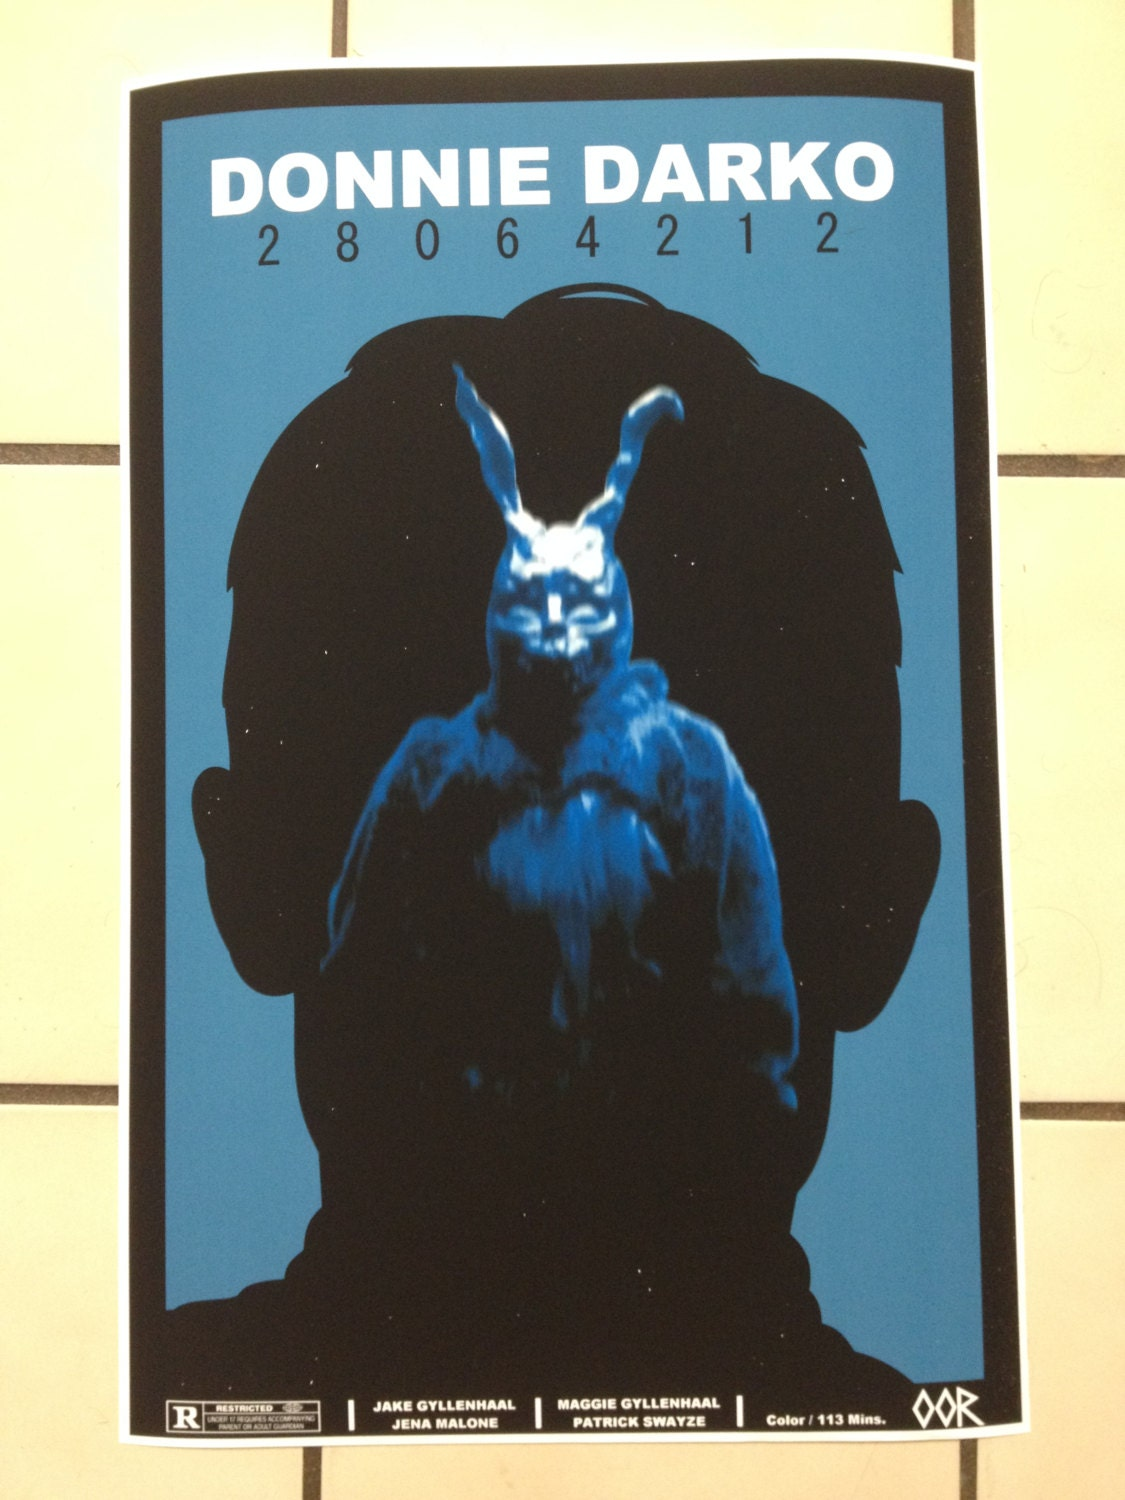 donnie darko film review essays Donnie darko is a 2001 science fiction film written and directed by richard kelly atmosphere and unconventional writing based on 21 reviews.